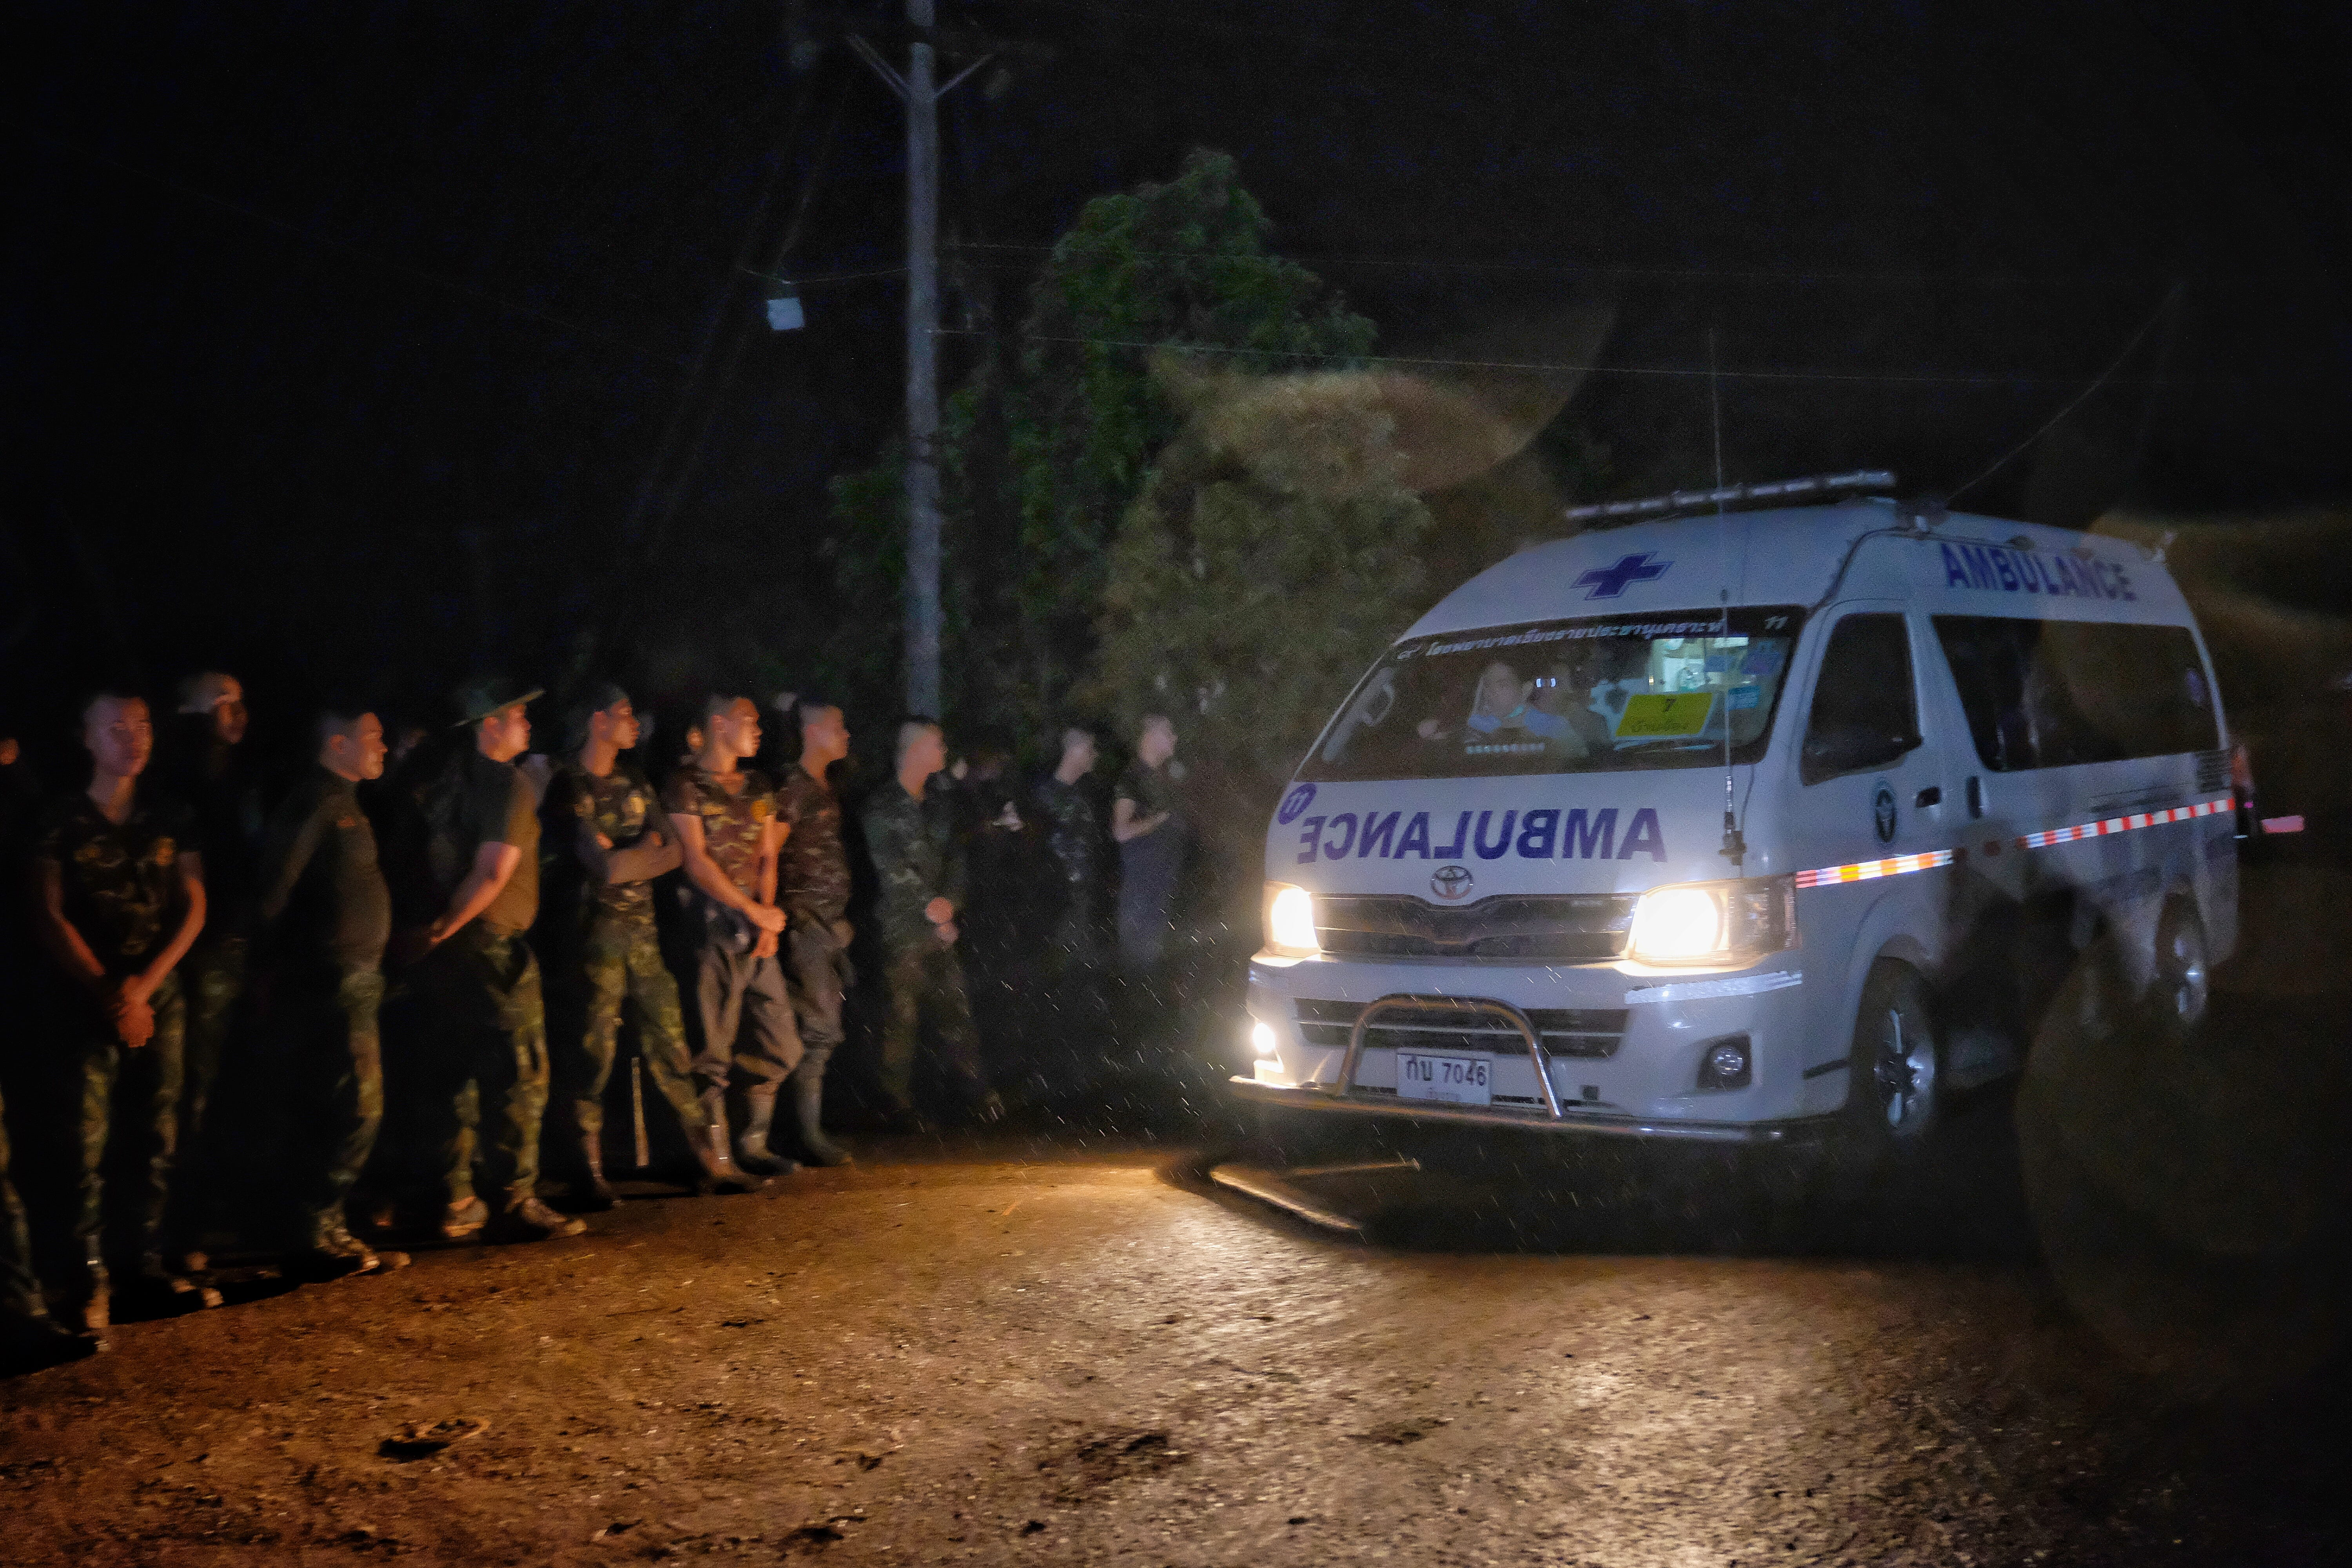 Ambulances transport boys rescued from the Tham Luang Nang Non cave to a hospital on July 8, 2018 in Chiang Rai, Thailand.  Elite divers on July 8 began the extremely dangerous operation to extract 12 boys and their football coach who have been trapp